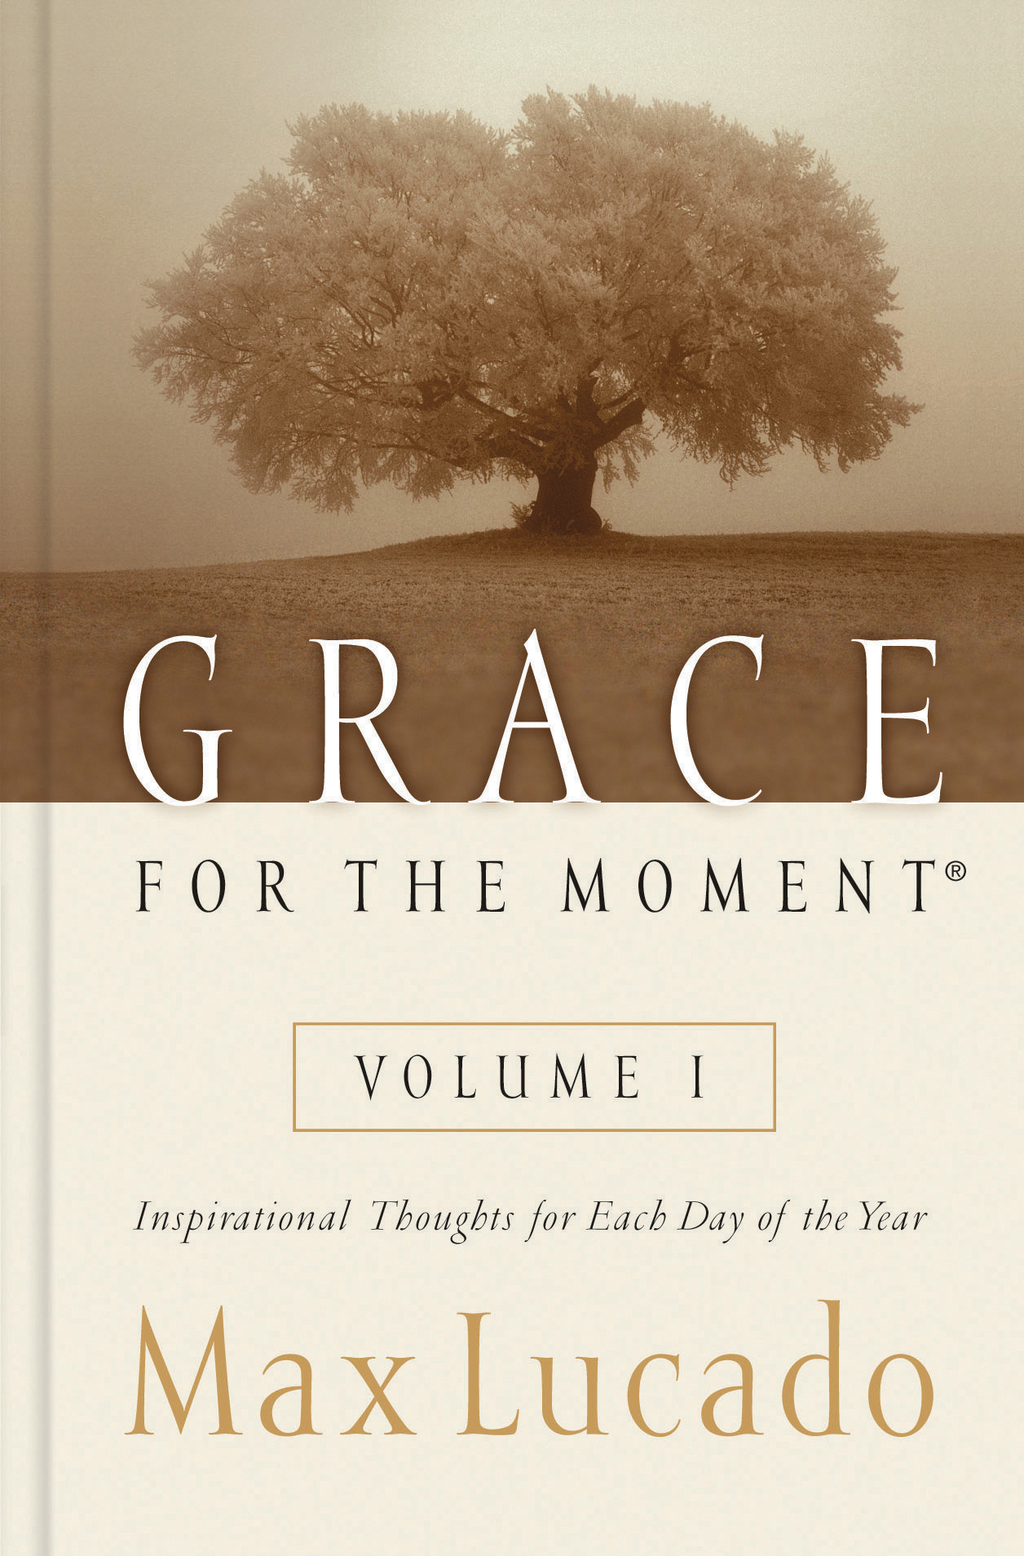 Grace for the Moment Volume I